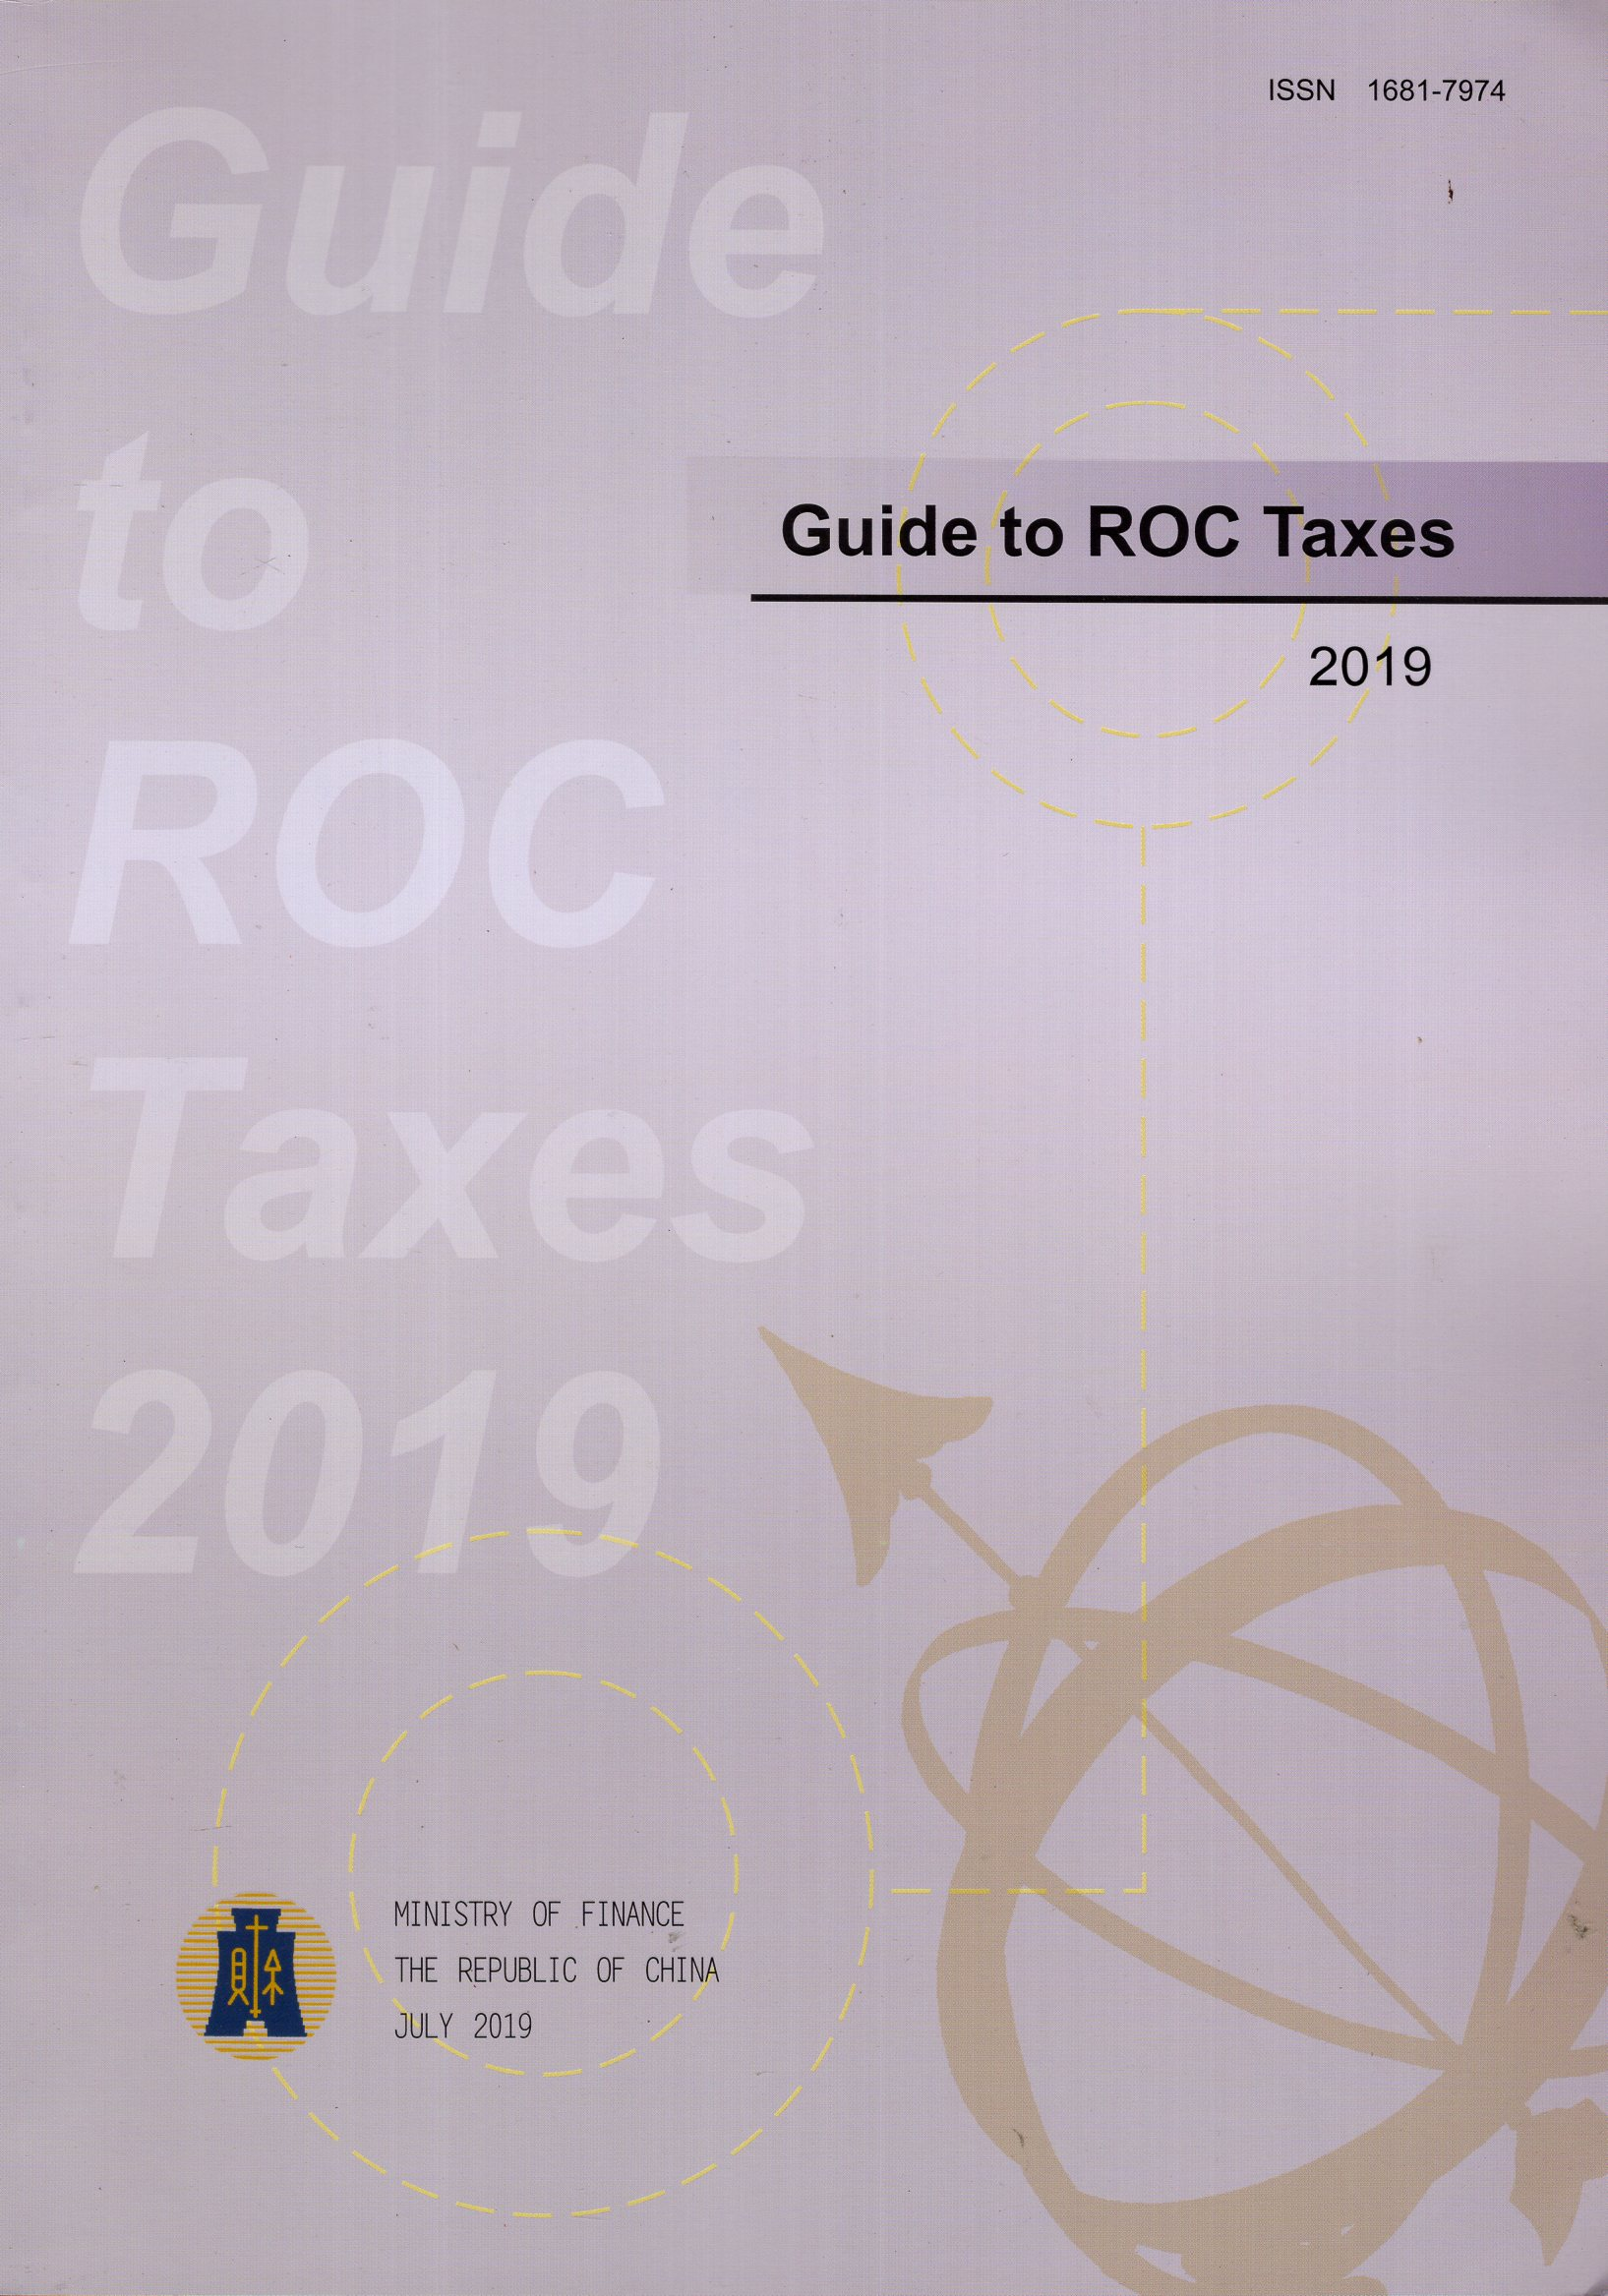 Guide to ROC Taxes 2019(108/07)